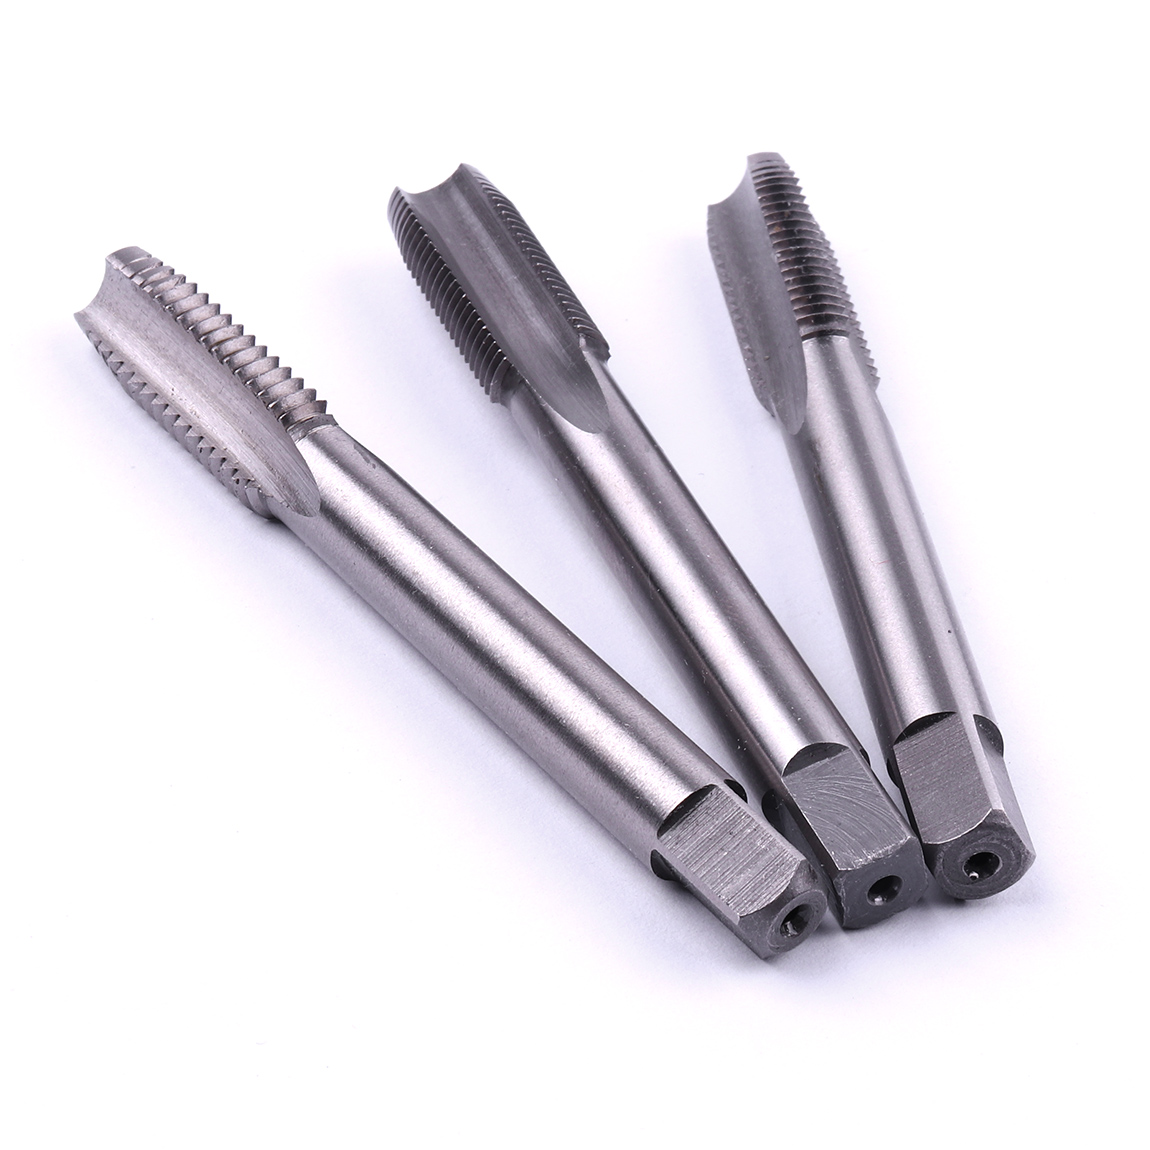 High Speed HSS 14mm x 1.5 Tap Right Hand Thread Spiral M14 x 1.5mm Pitch US